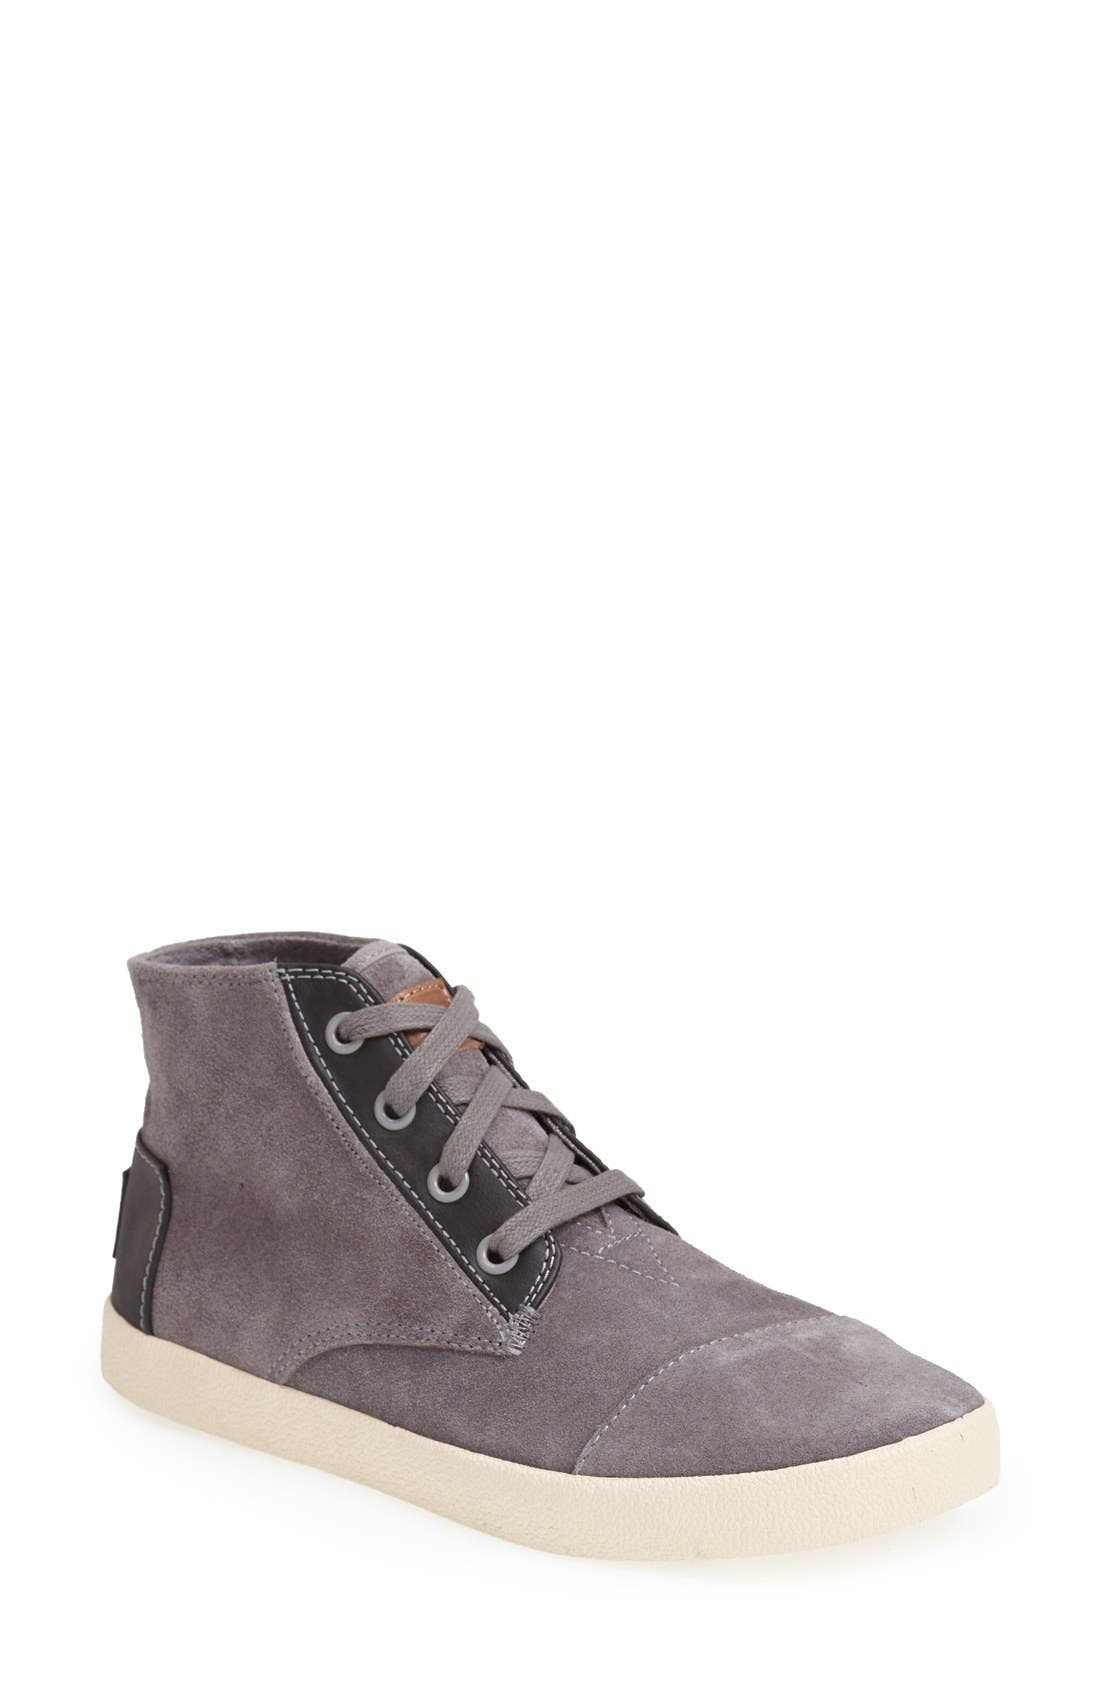 Alternate Image 1 Selected - TOMS 'Paseo - High' Sneaker (Women)